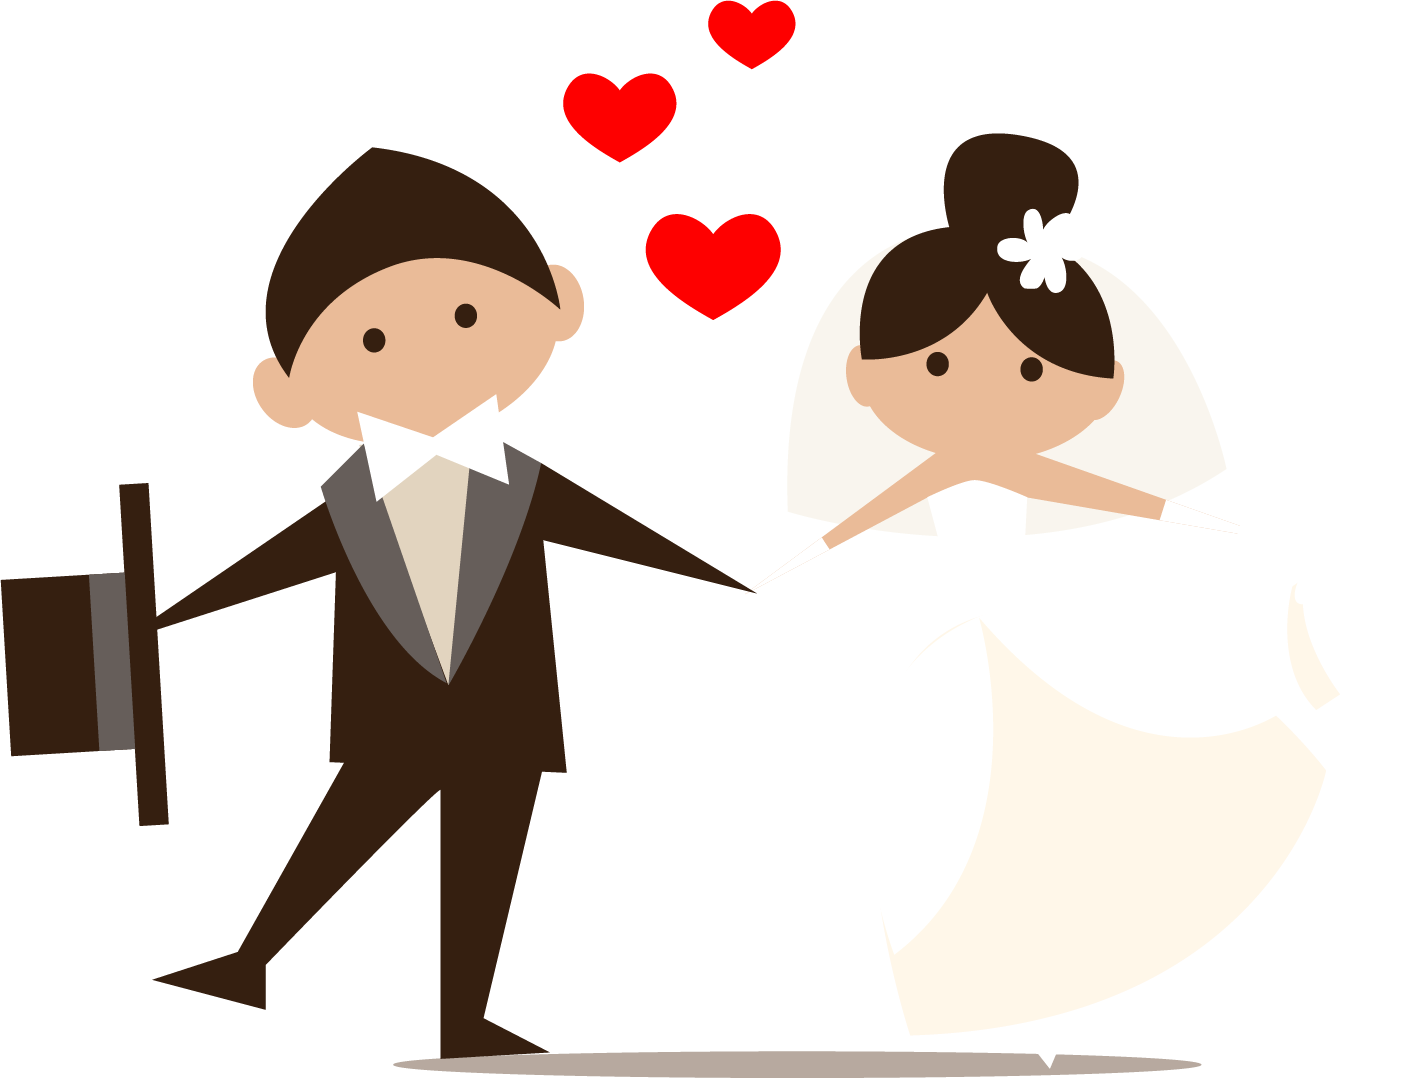 Wedding transparent. Clipart png image images